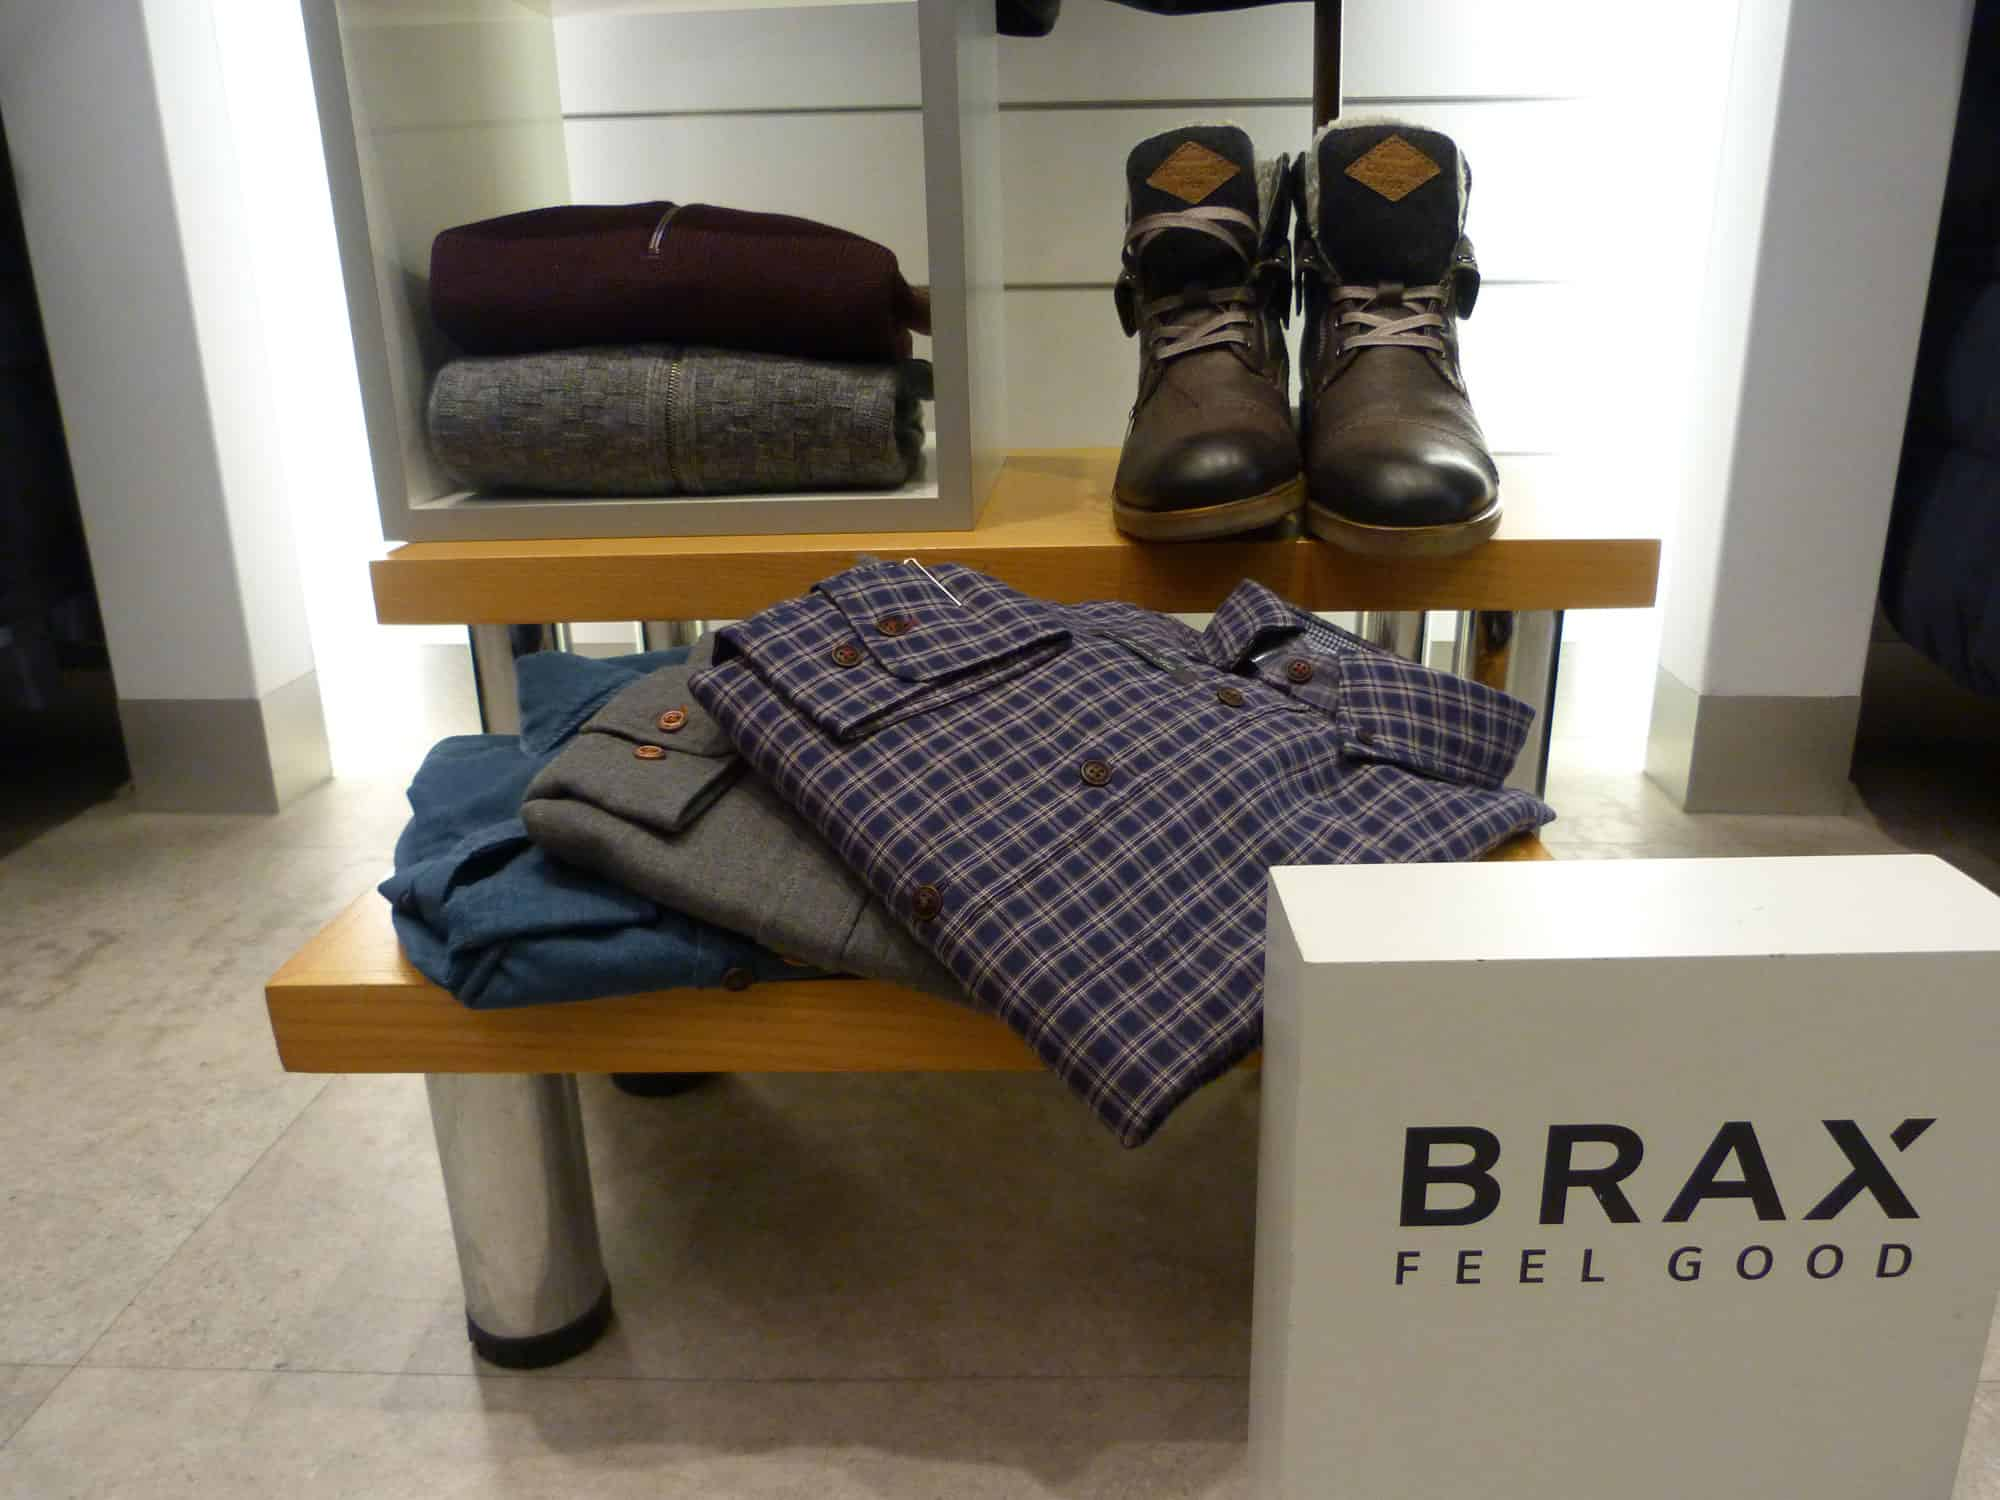 Brax by Smart Clothes York Yorkshire